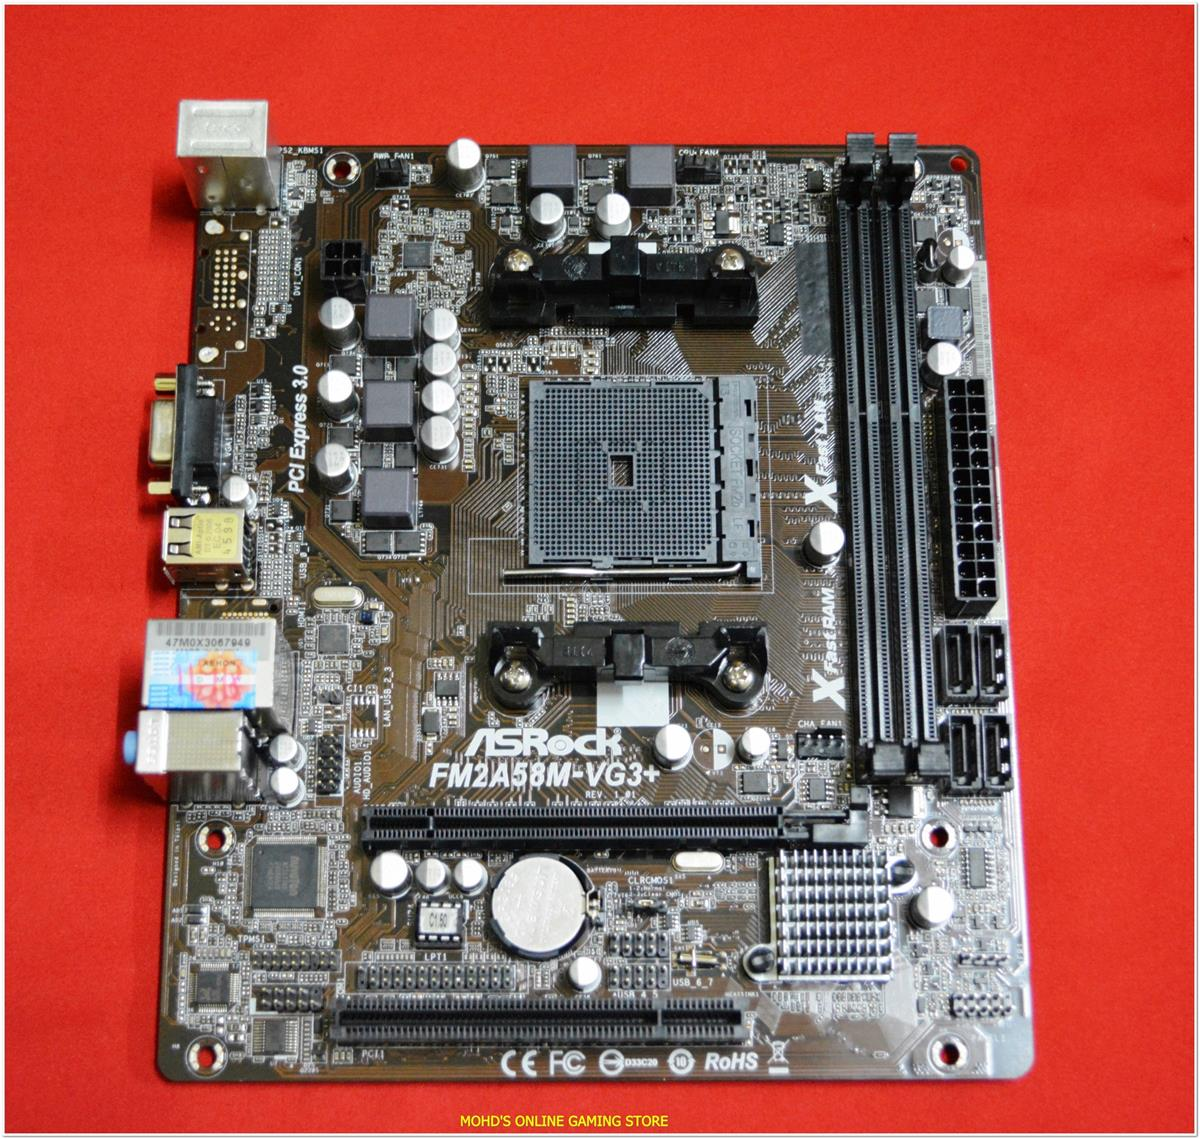 ASROCK FM2A58M-VG3+ MOTHERBOARD DRIVERS FOR WINDOWS 7